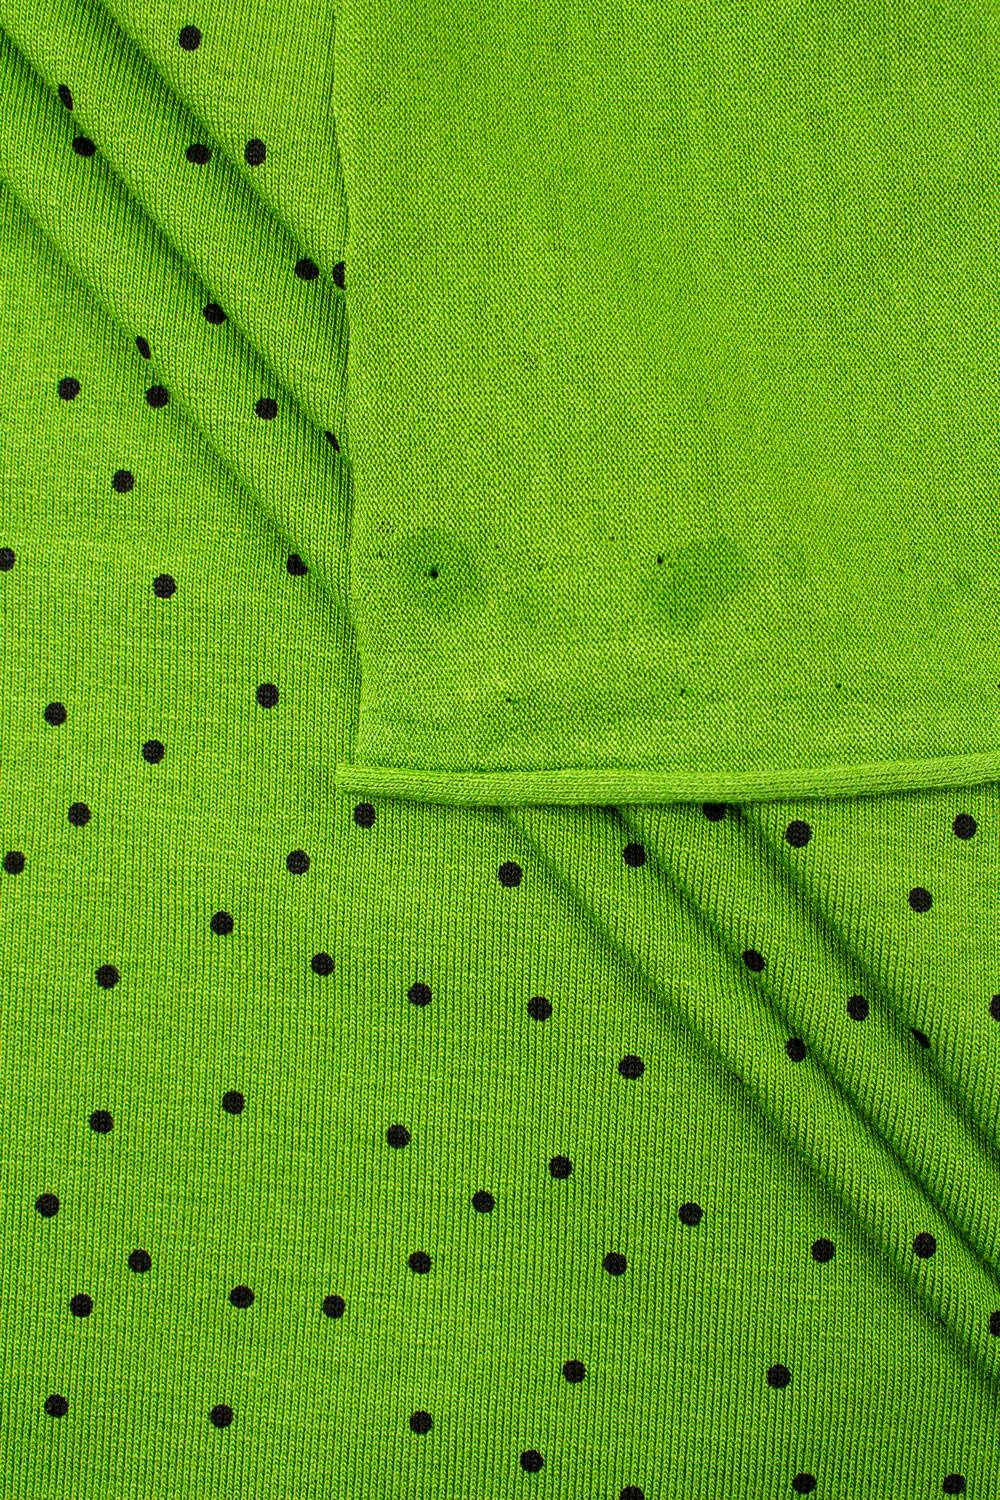 Knit - Viscose Jersey - Apple Green With Black Polka Dots - 160 cm - 200 g/m2